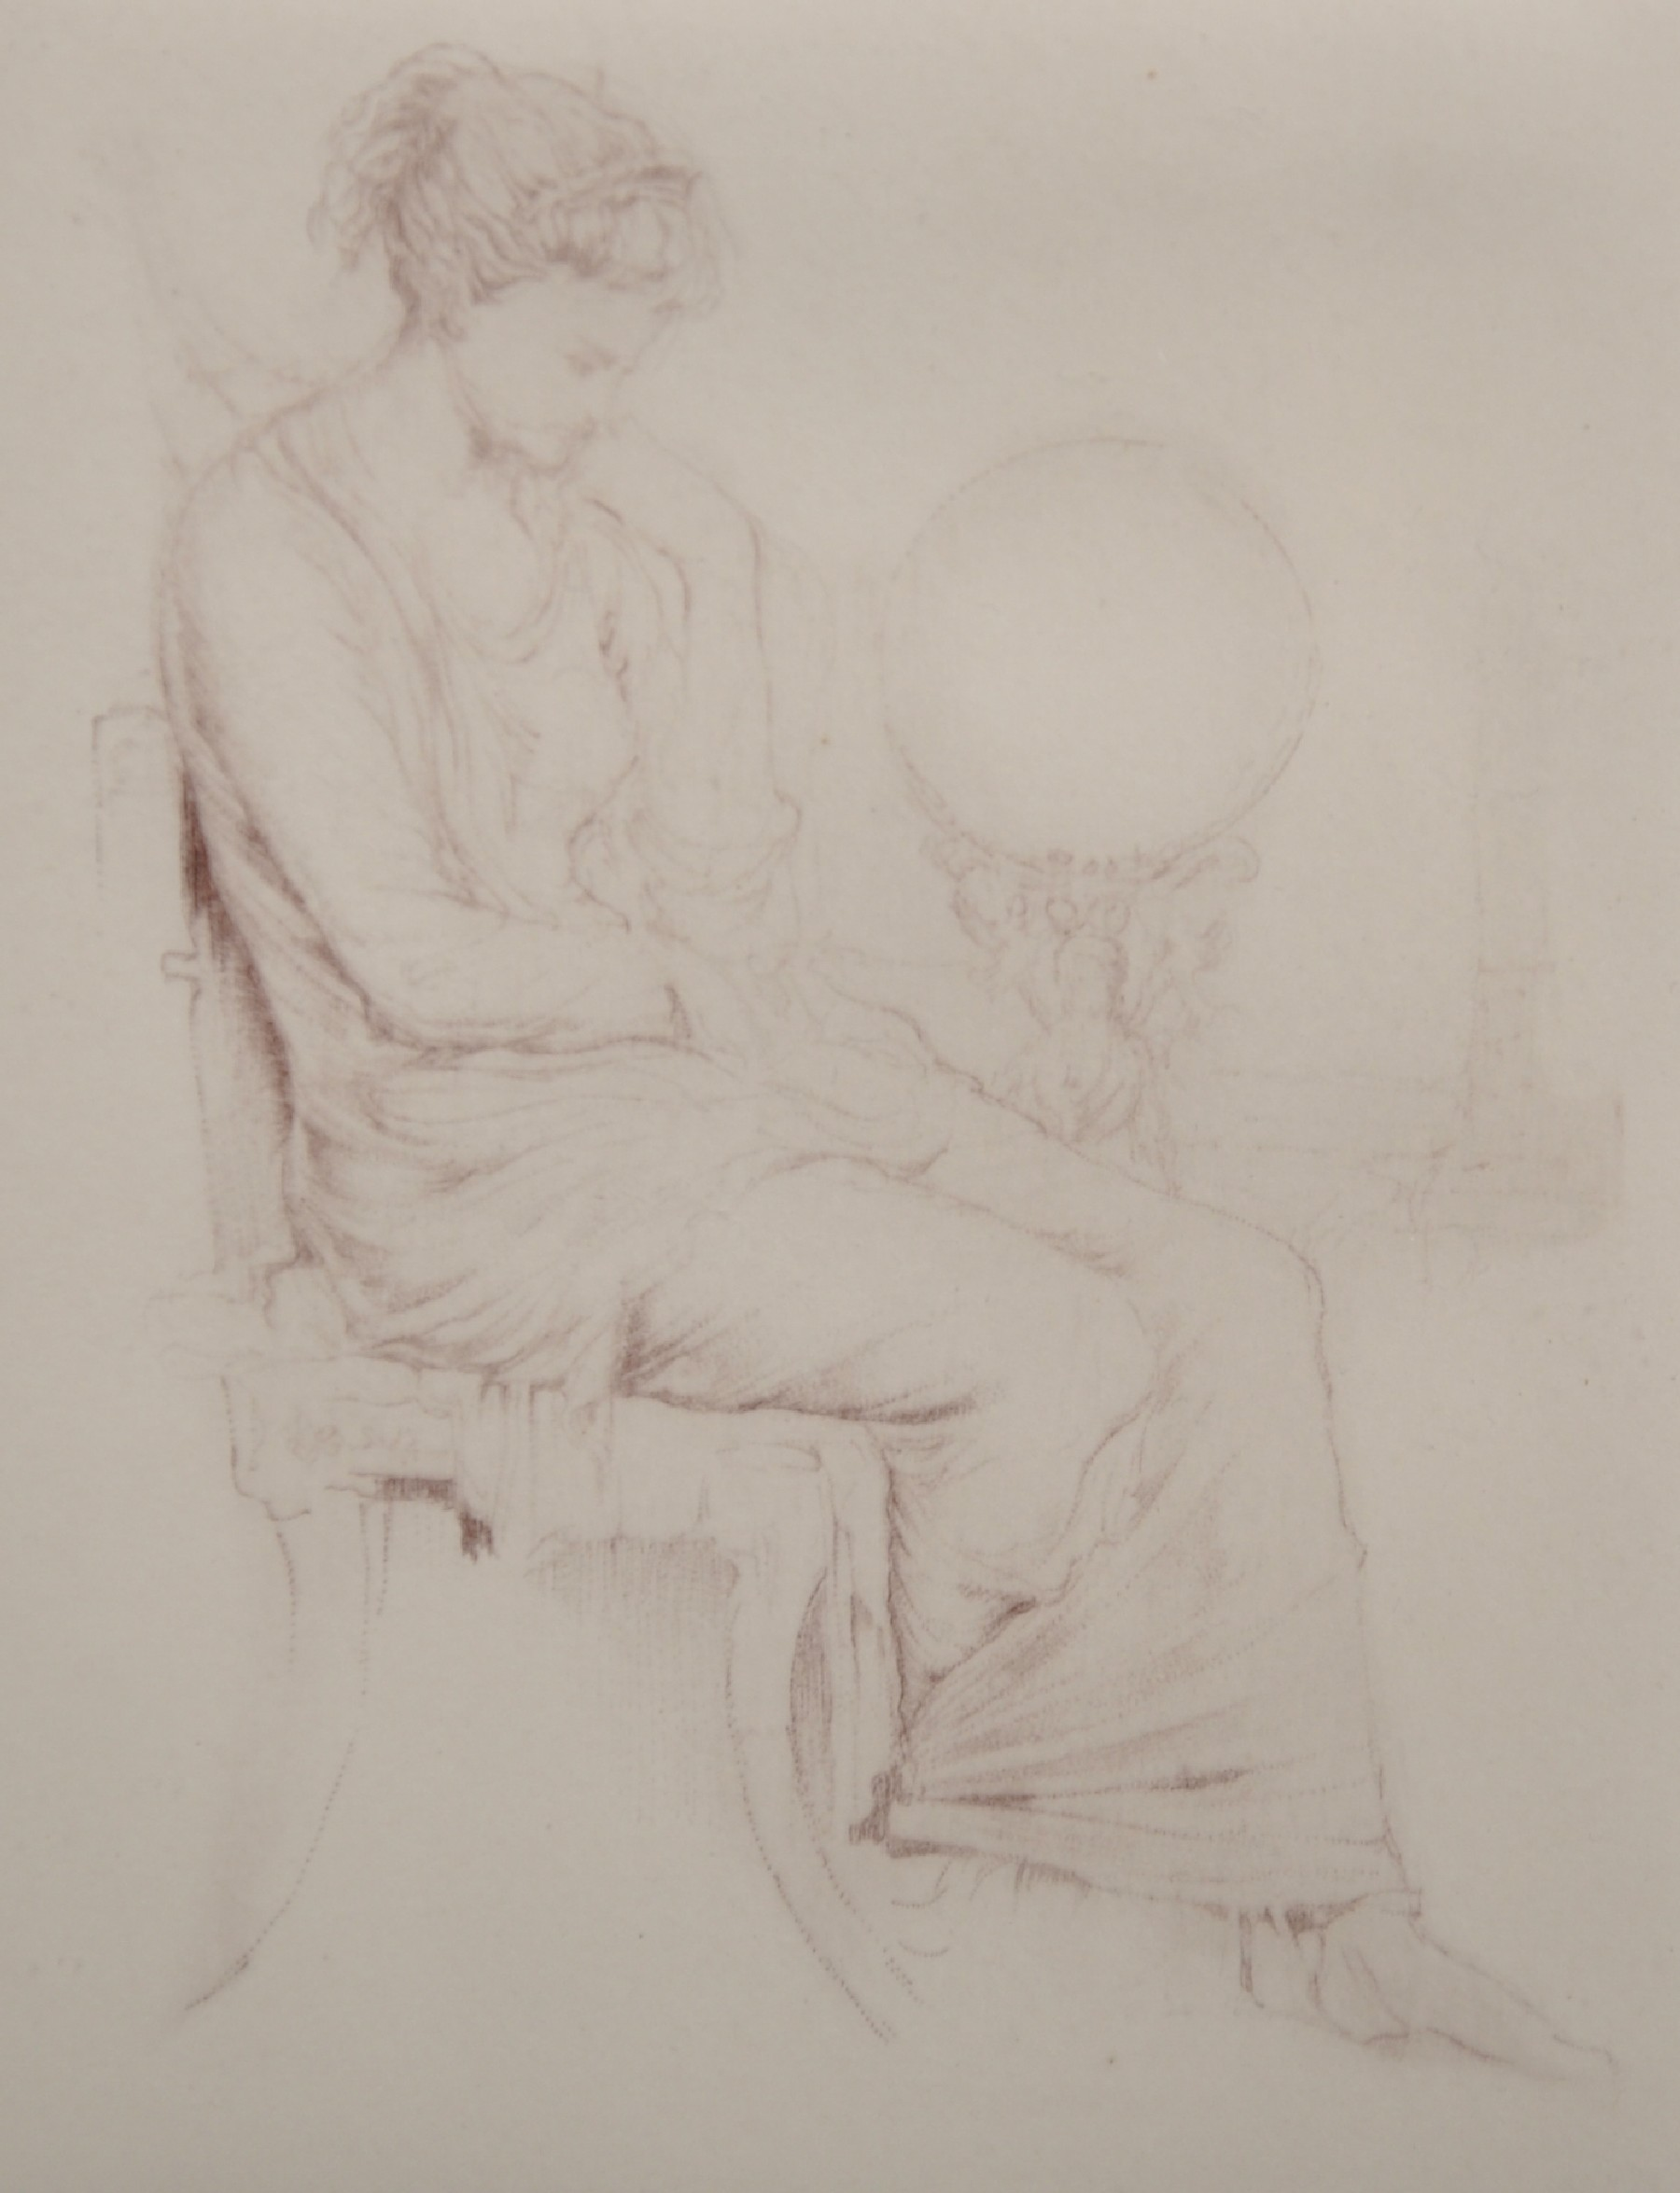 Laforte (20th Century) European. Study of a Seated Maiden, Etching, Indistinctly Signed and Numbered